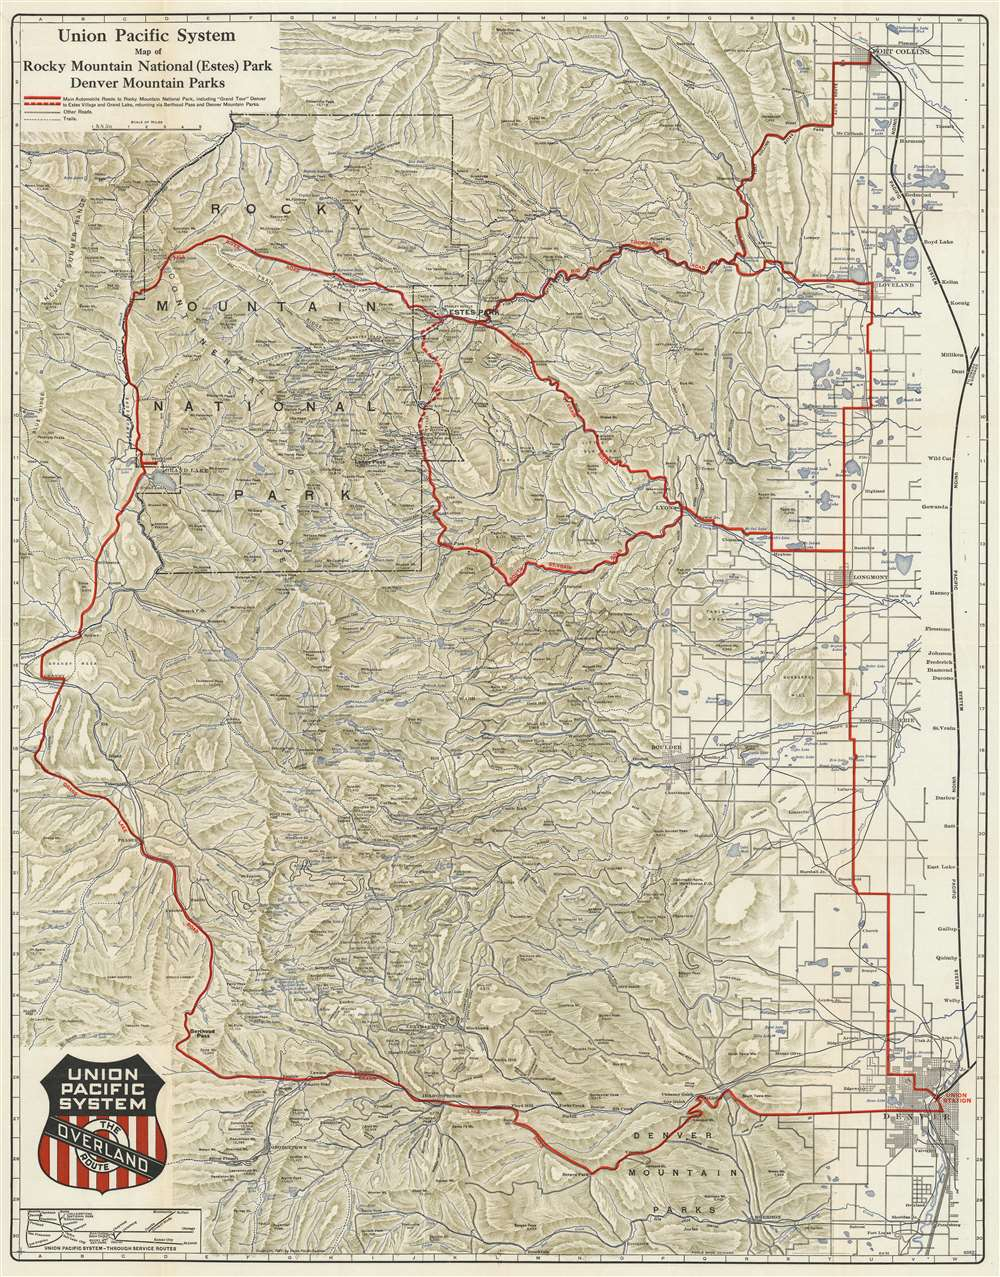 1924 Poole and Union Pacific Map of Estes Park, Colorado